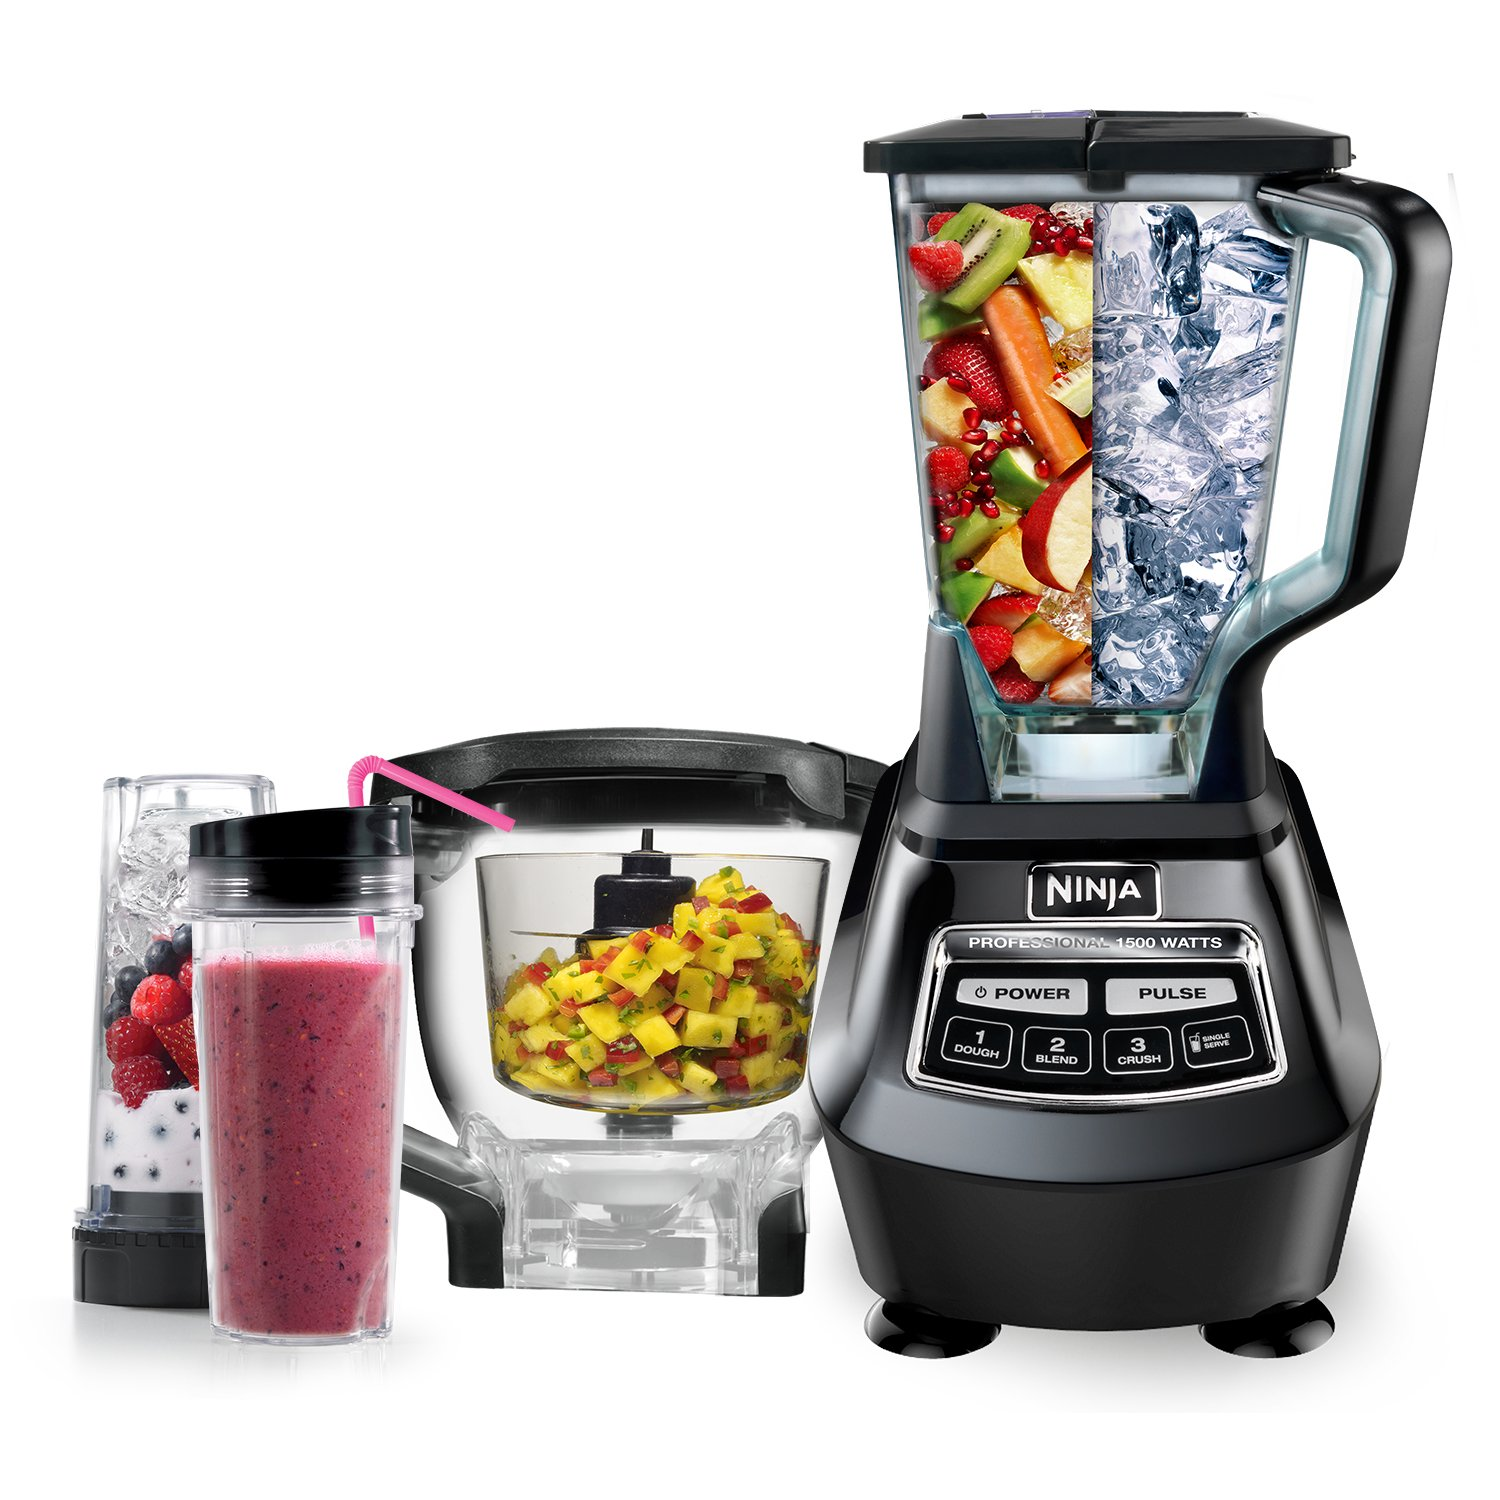 amazoncom ninja mega kitchen system bl771 electric countertop blenders kitchen dining - Ninja Kitchen System